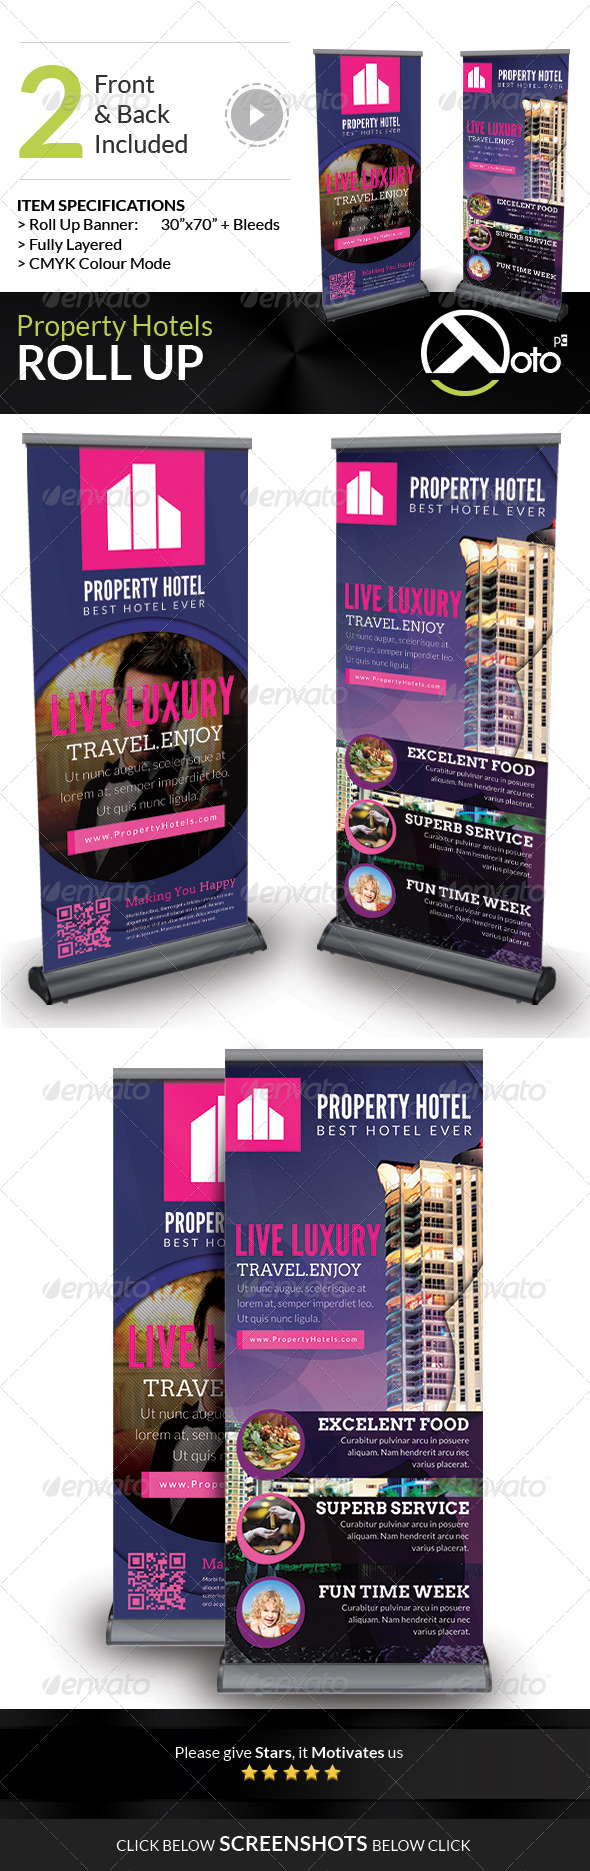 Property Hotel Roll Up Banners - Signage Print Templates